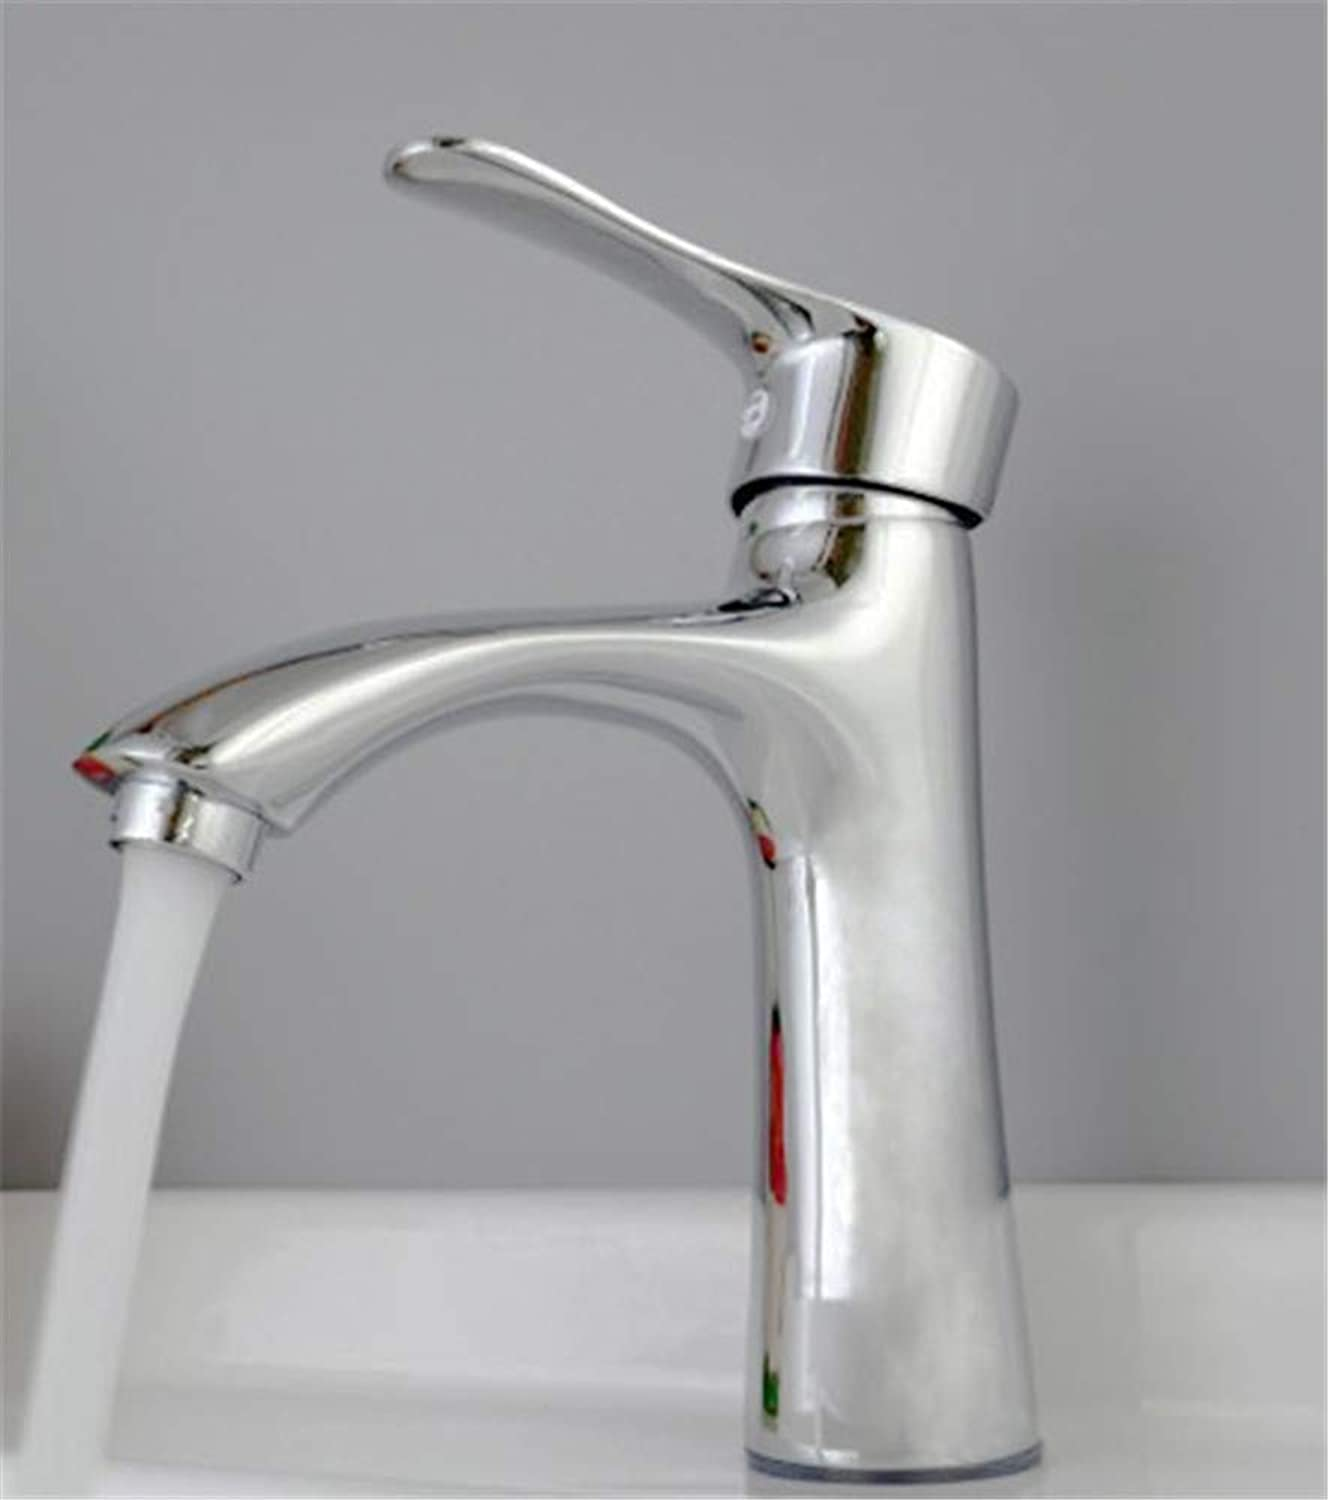 Faucet Modern Luxury All Copper Washbasin, Faucet, Washbasin, Hot and Cold Water Faucet, Basin Top Faucet.